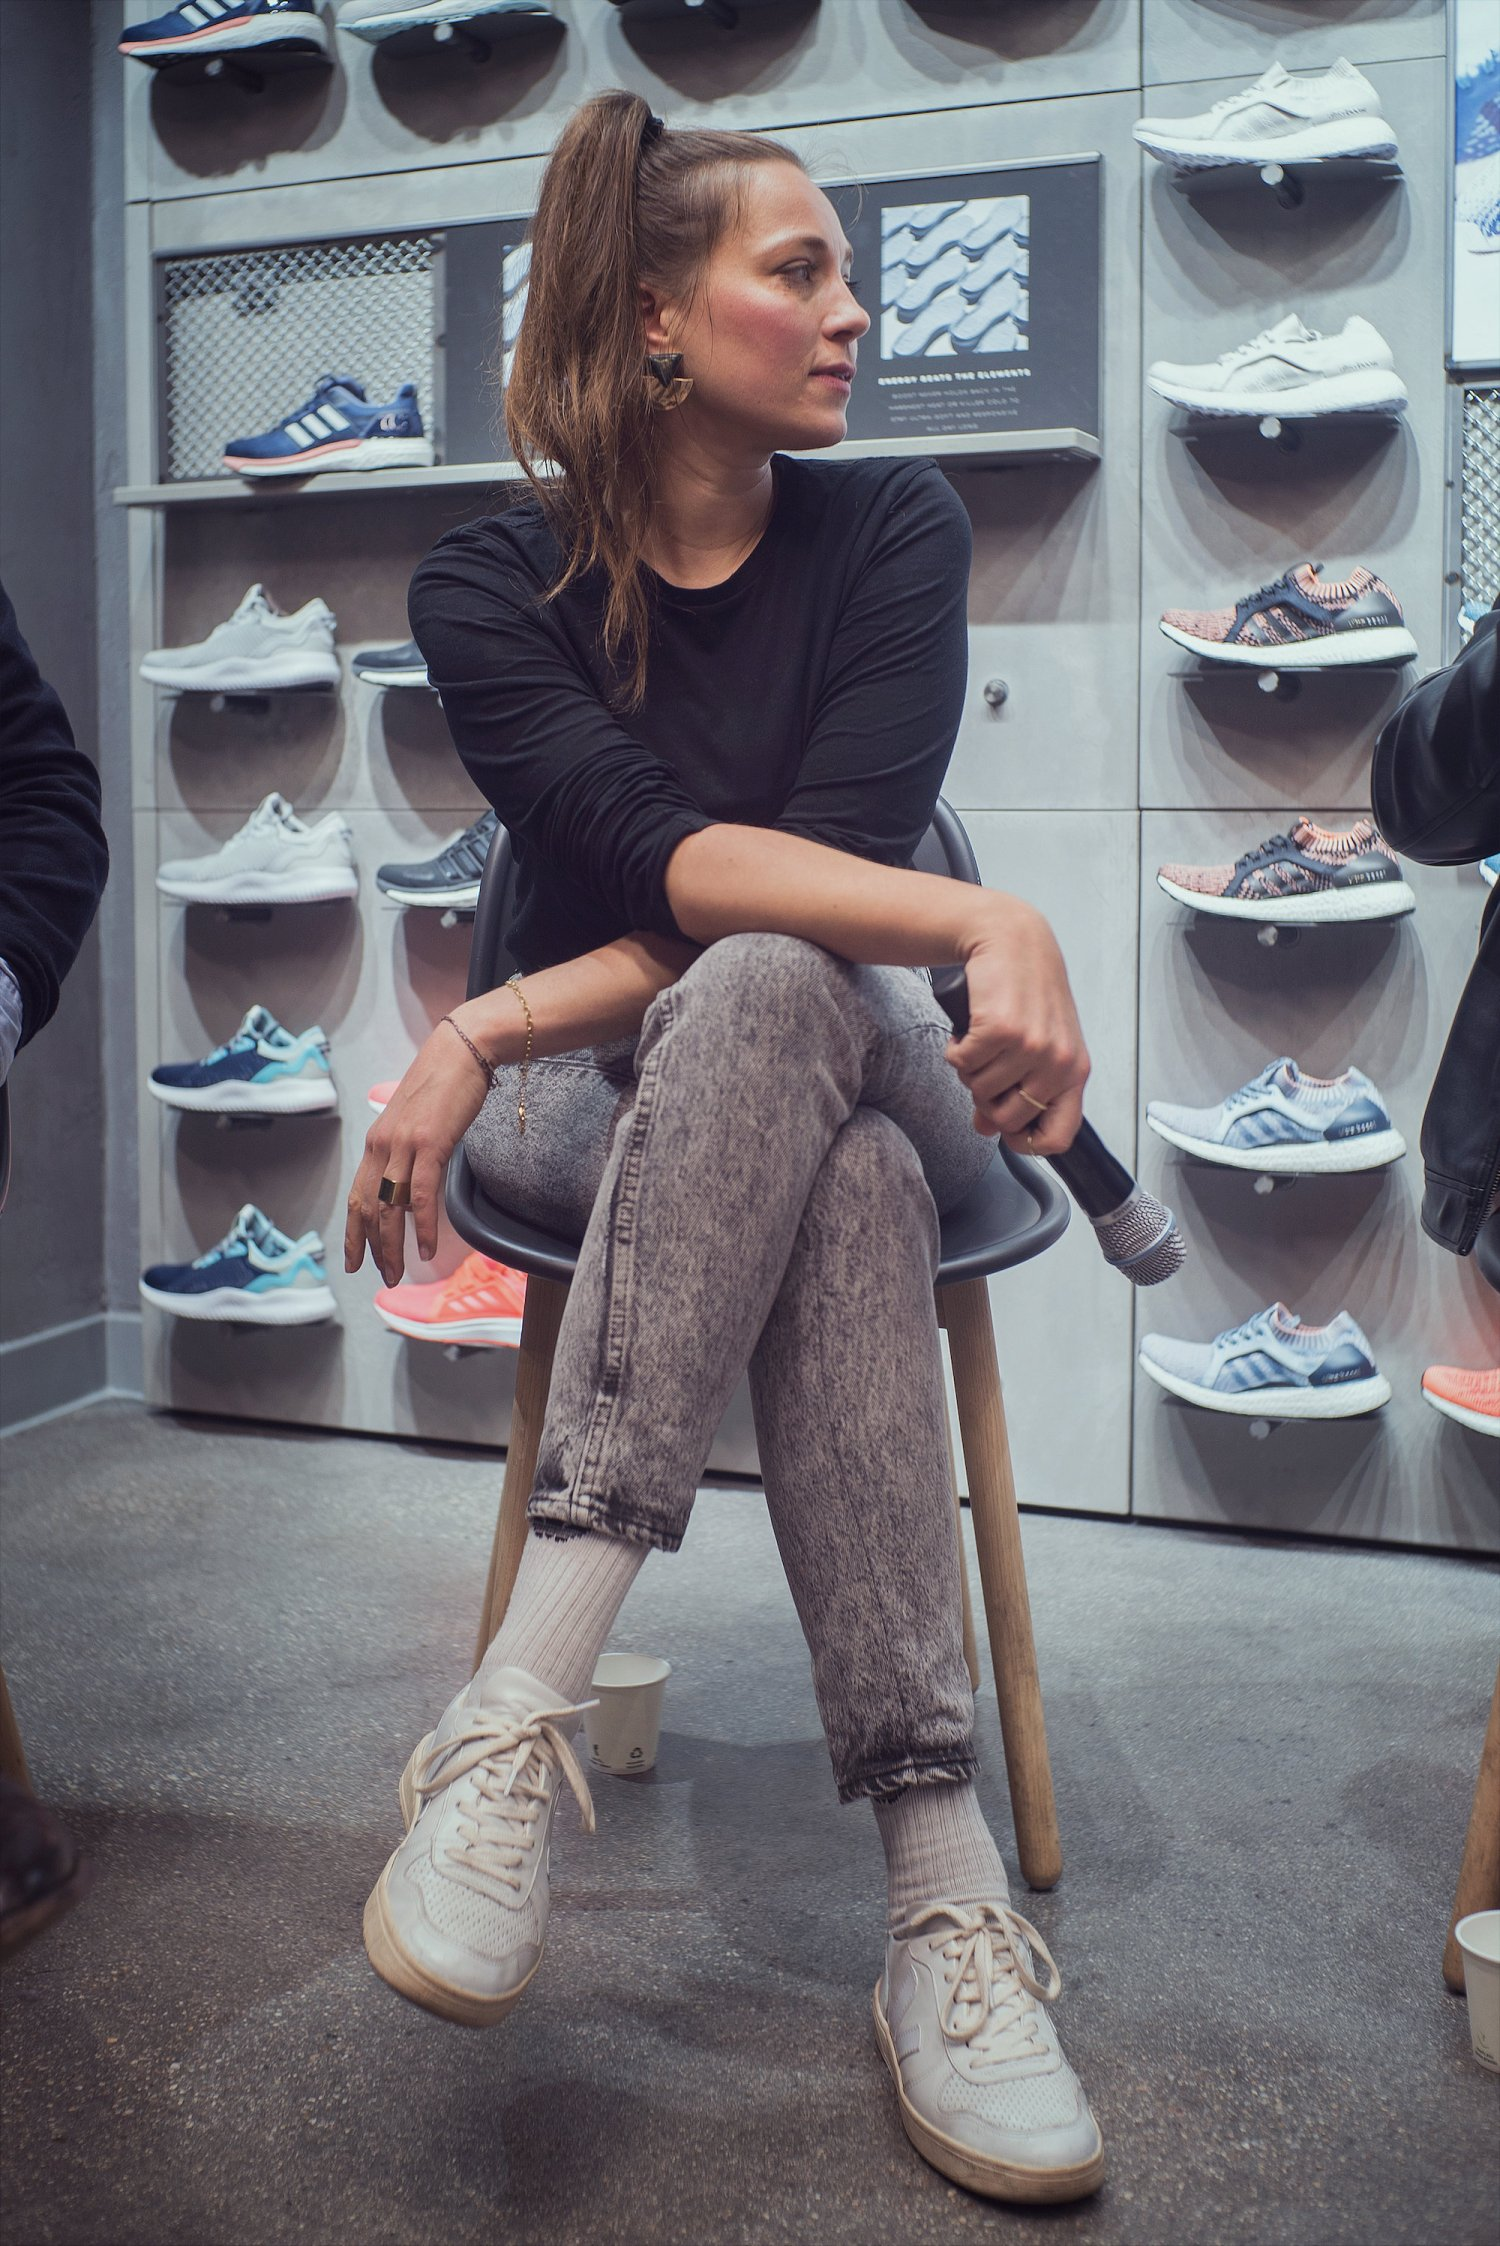 Adidas-Event-Parley-II_by-Obel-21